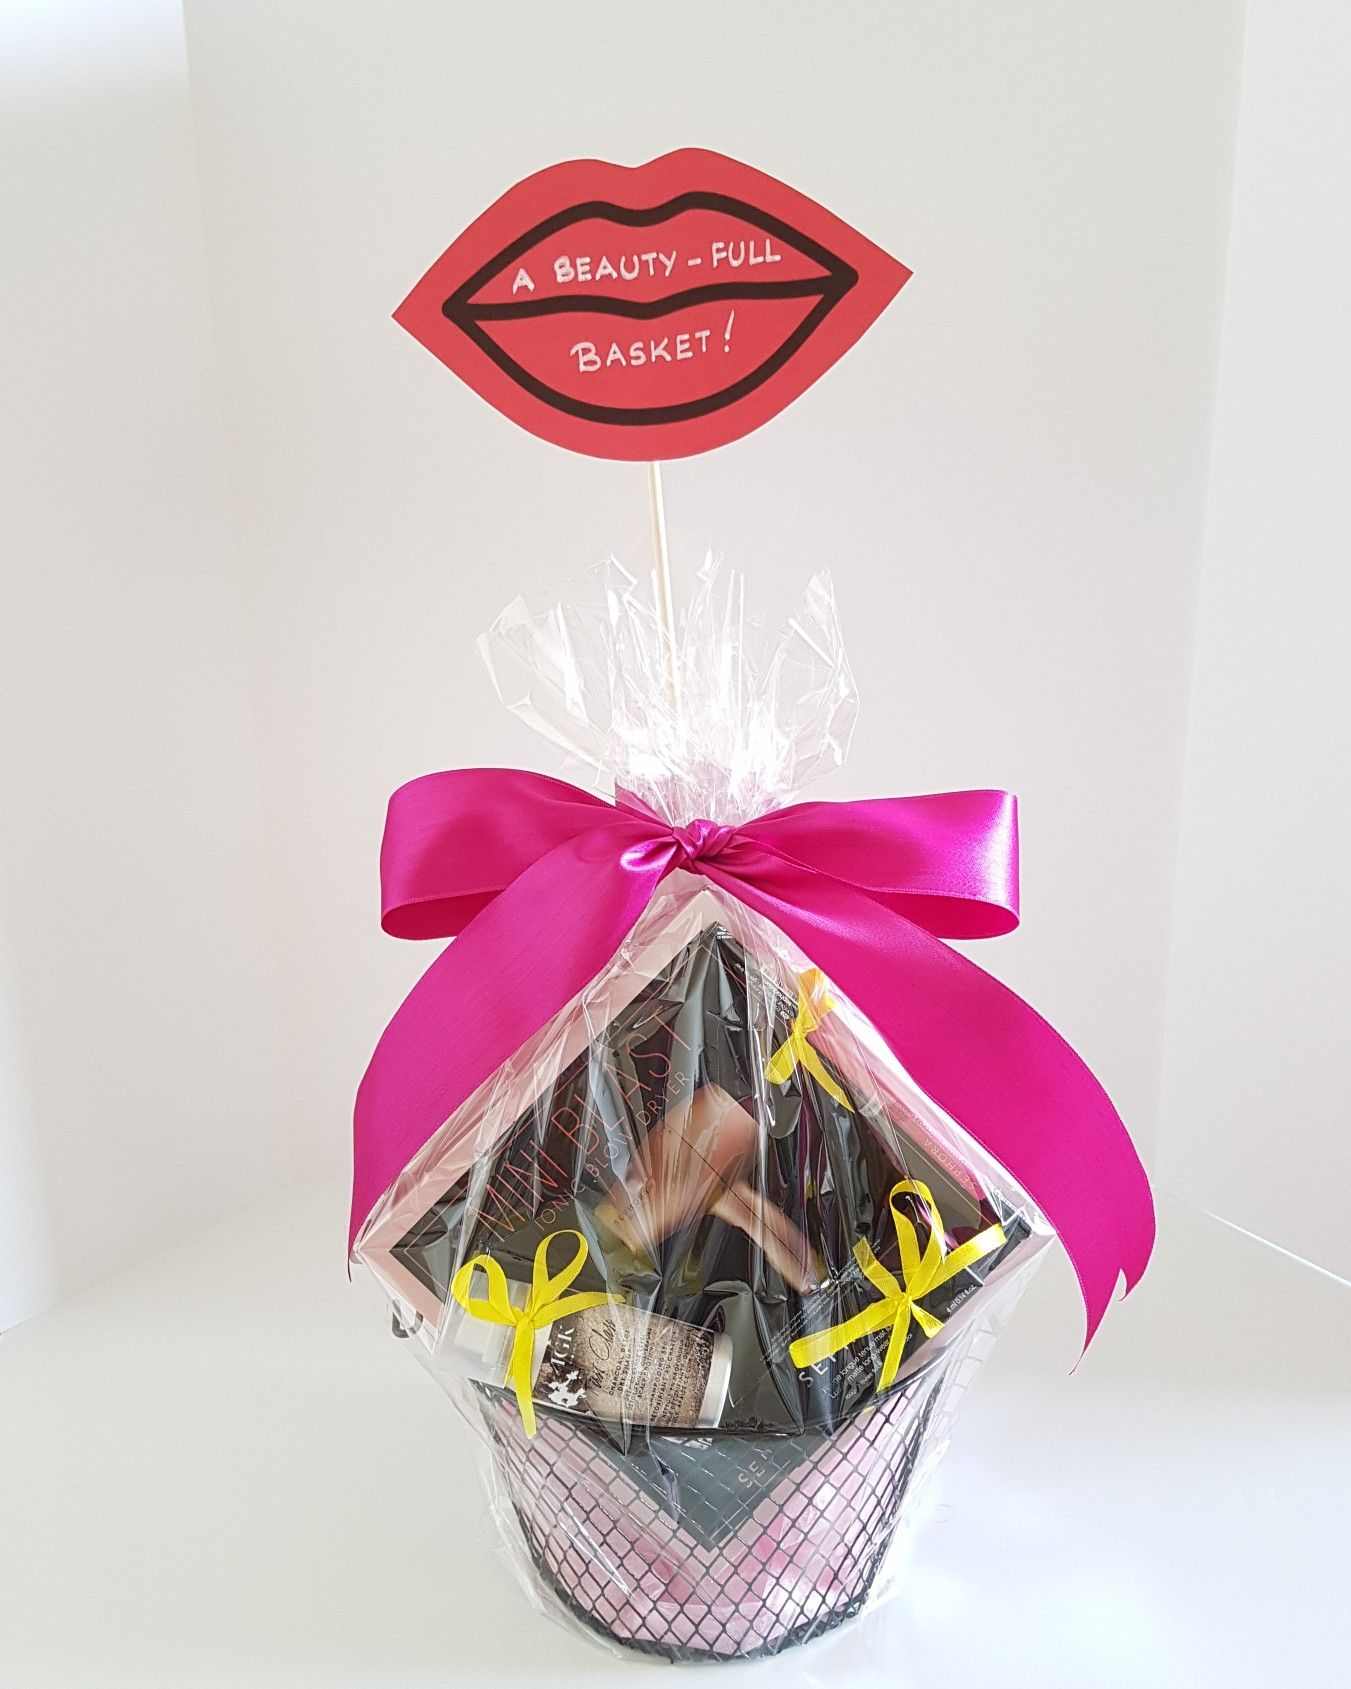 Beautyfull basket curated gifts client gifts tea